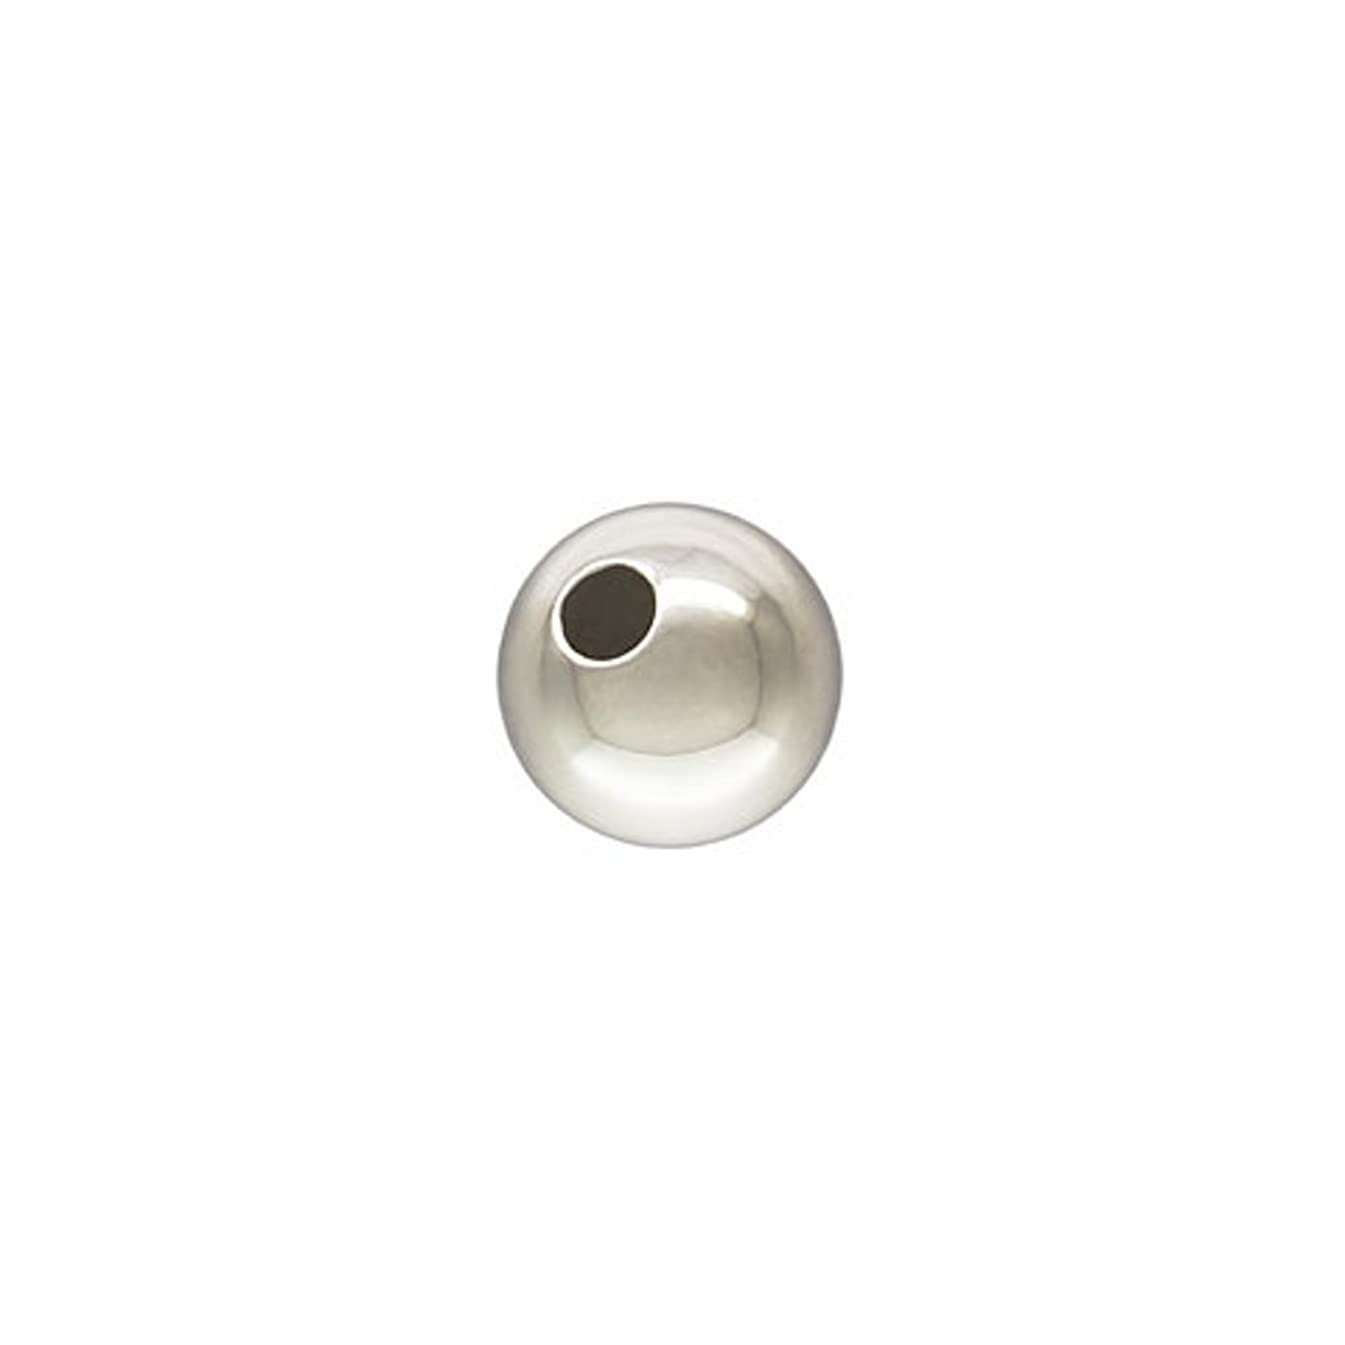 50 Qty. 6mm Round Sterling Silver Bead with 1.8mm hole.925, by JensFindings